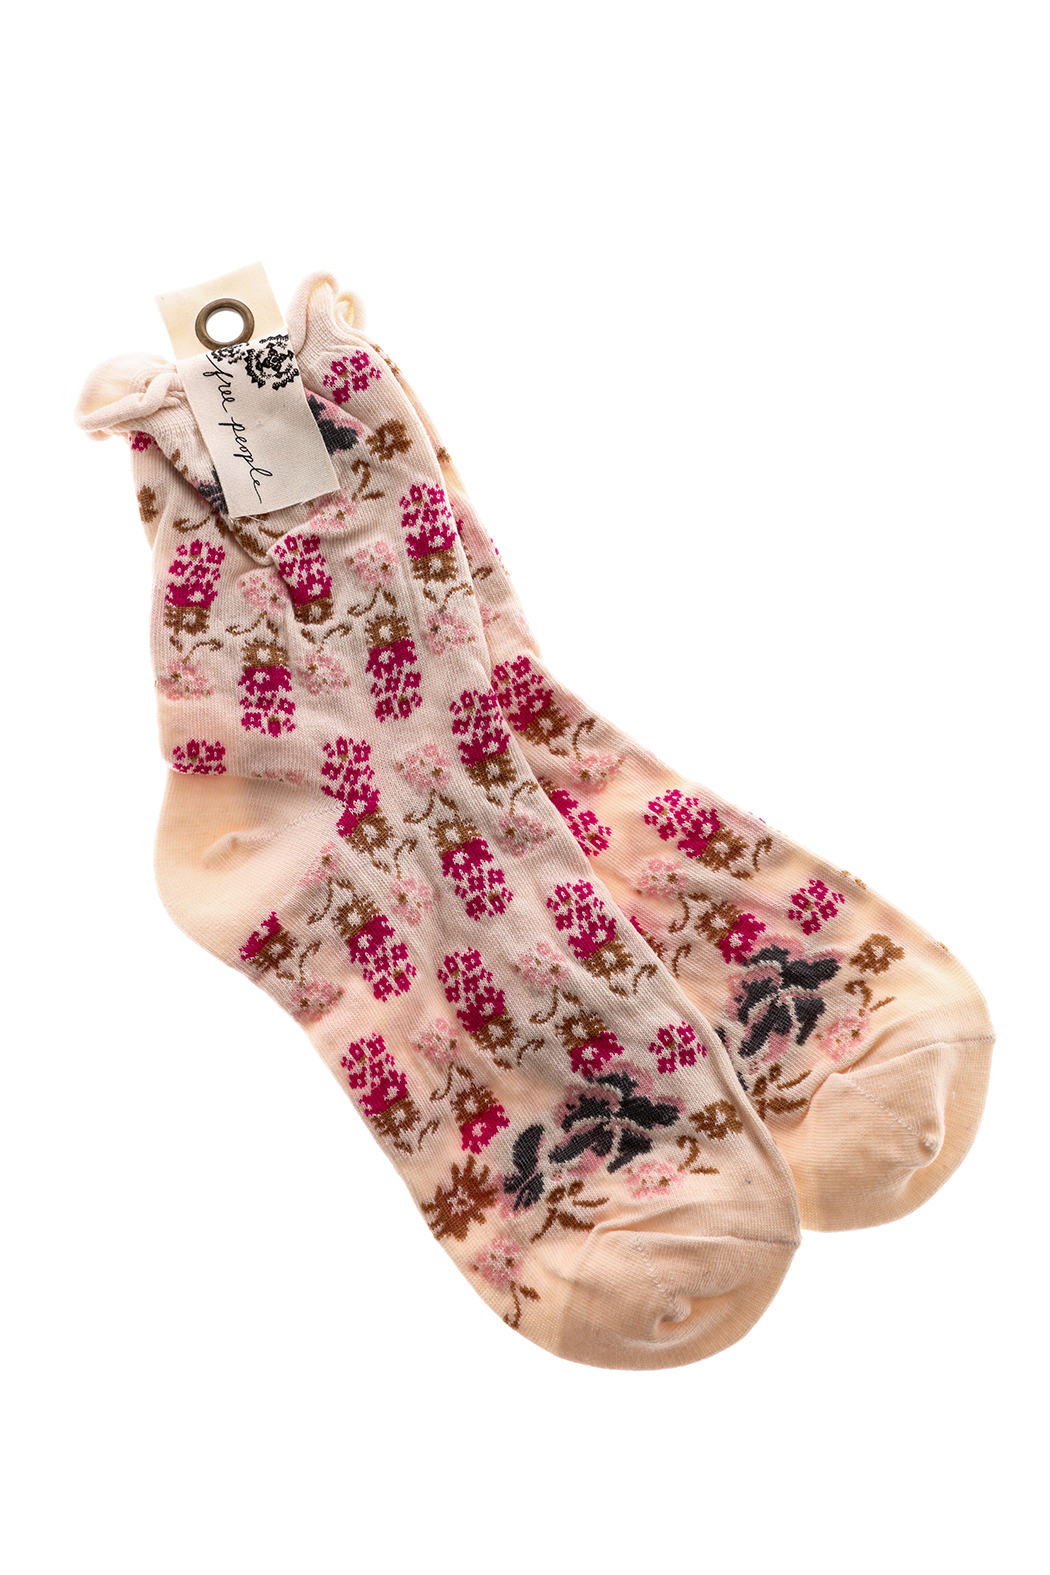 Free People Floral Print Ankle Sock - Main Image